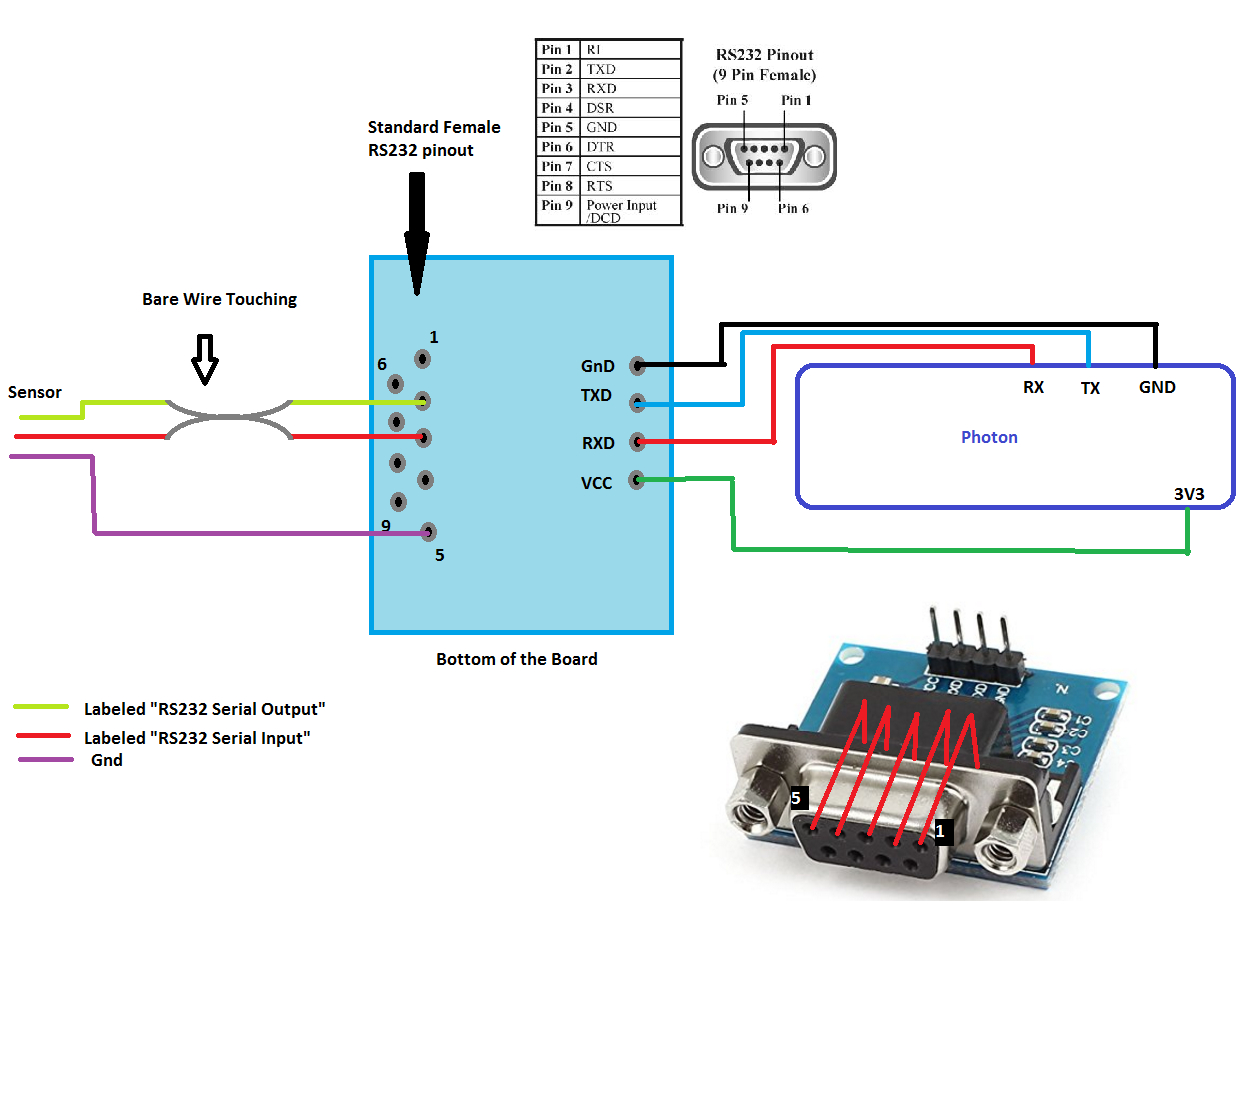 Rs232 Converter Only Works When I Cross The Wires - Hardware - Particle - Cllena Dual Usb Wiring Diagram